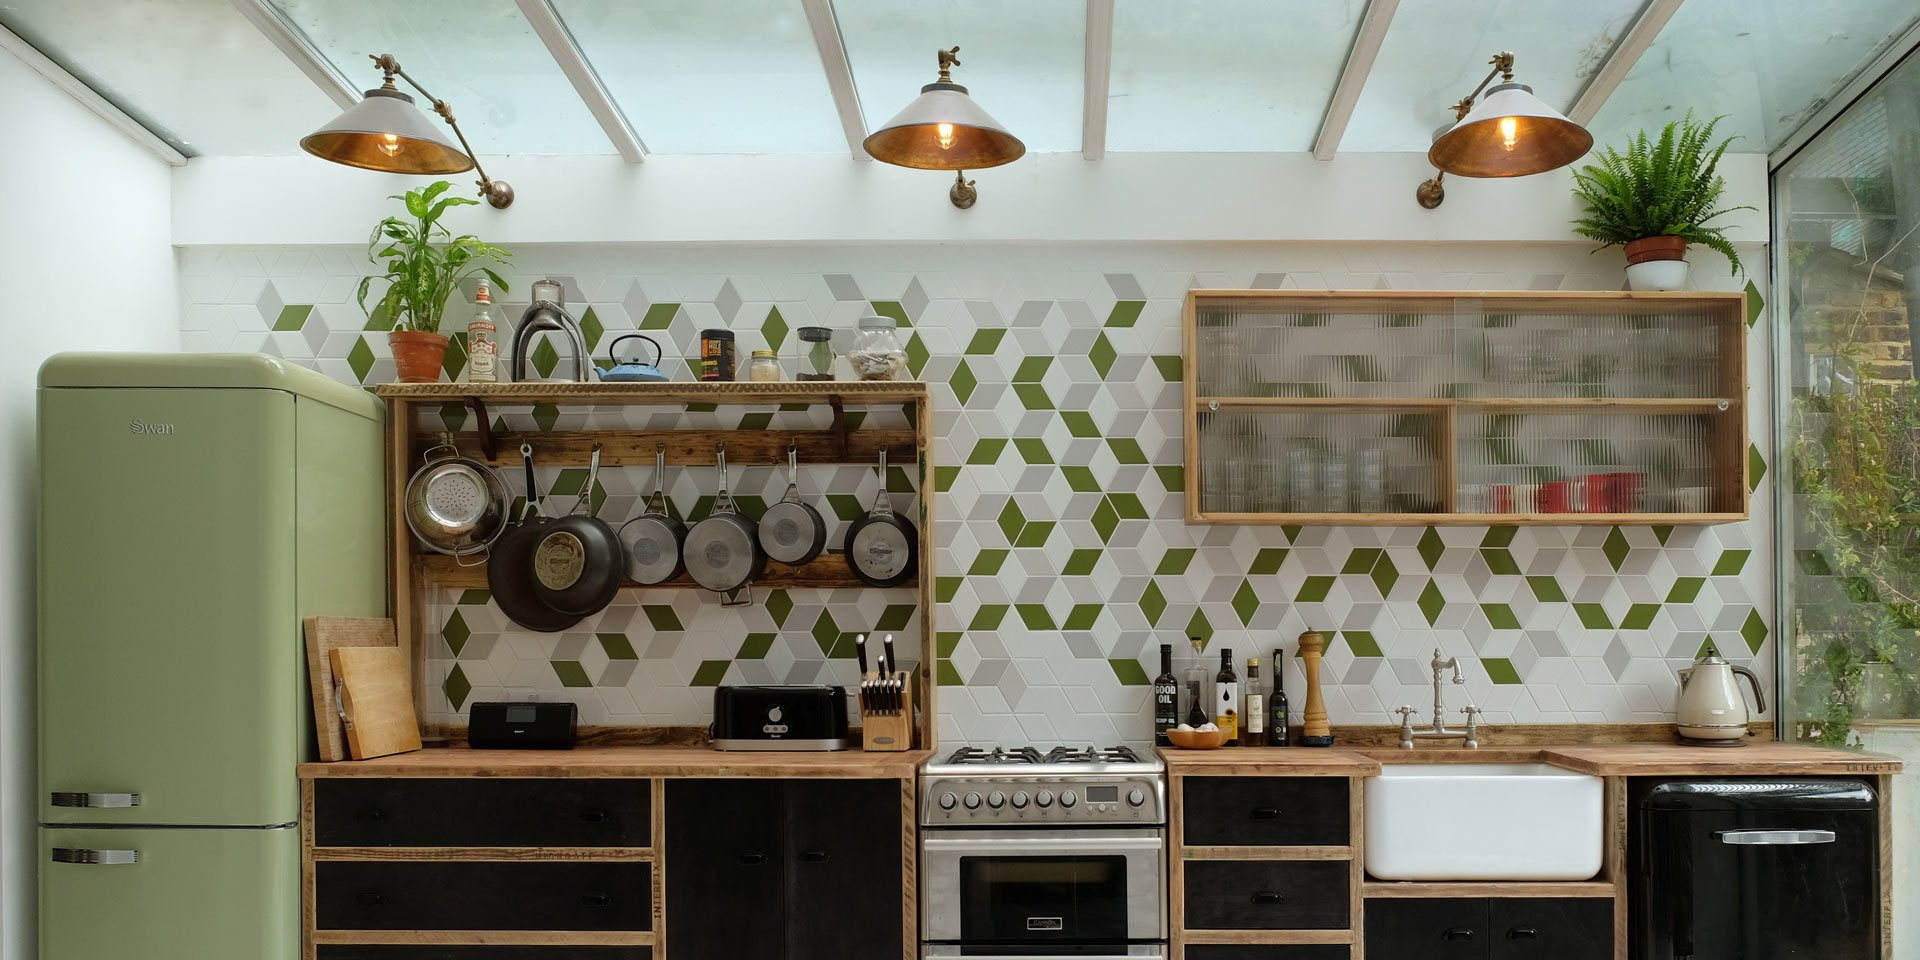 Three unique lighting ideas for your kitchen